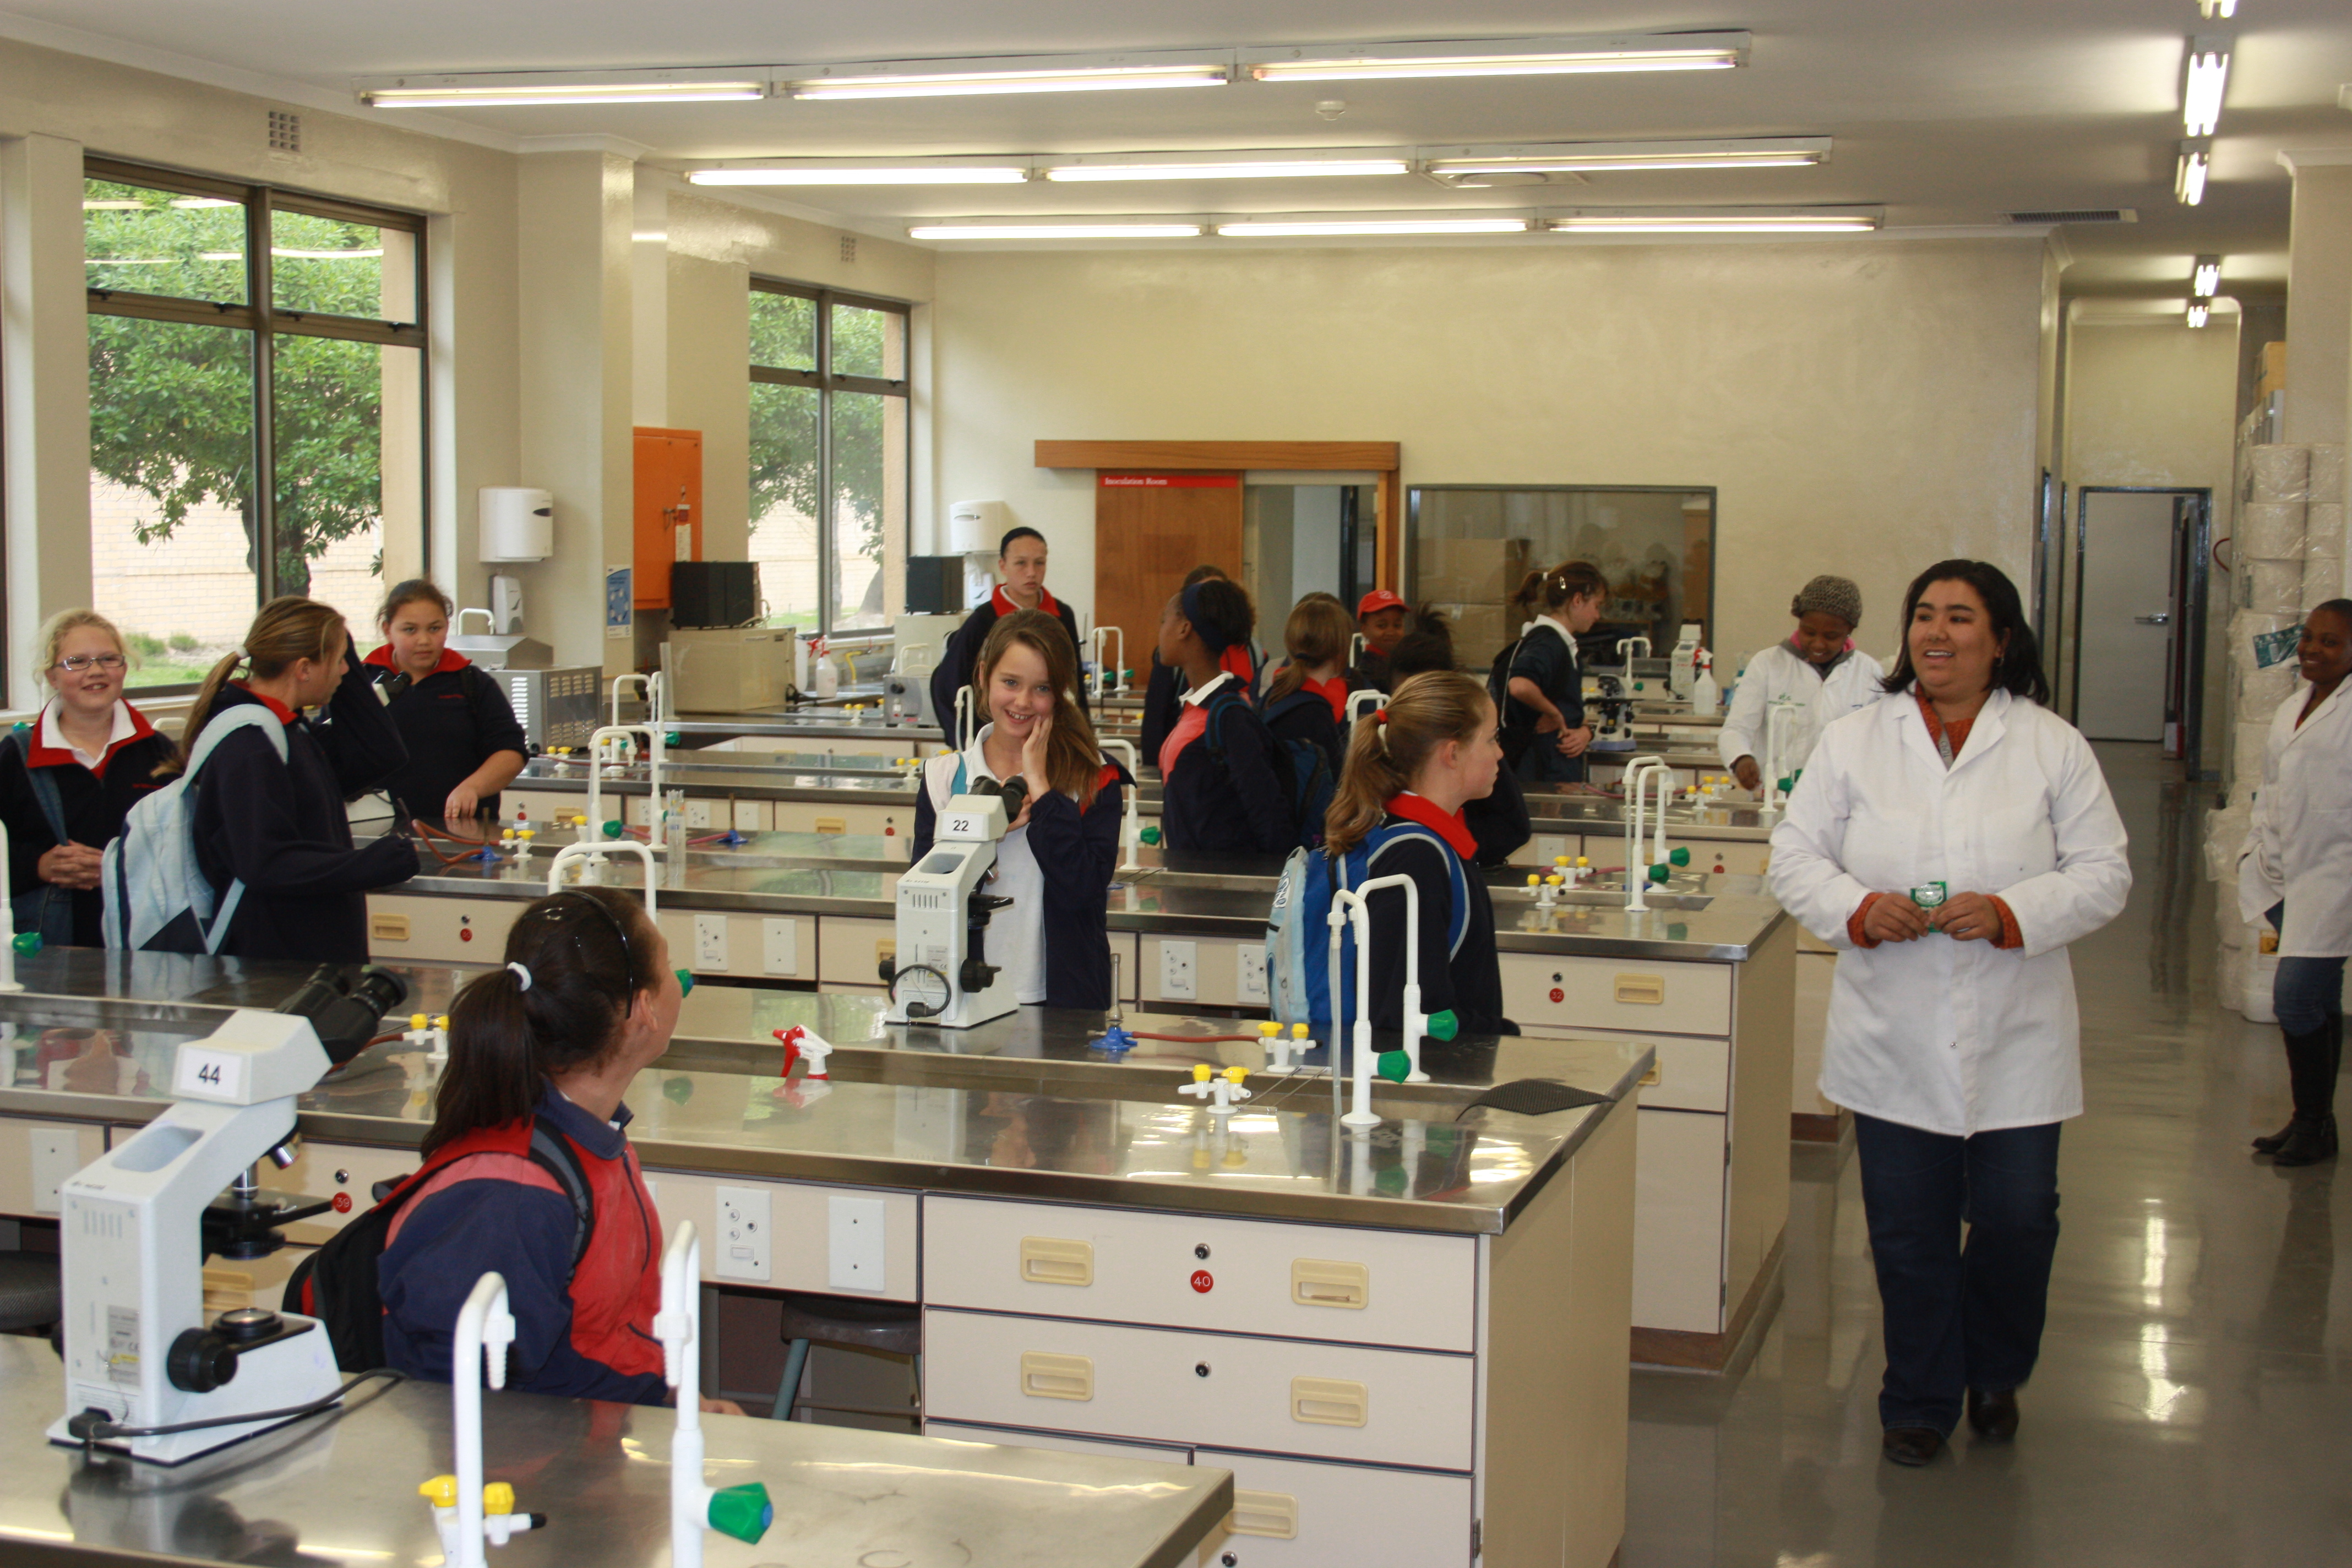 Cput welcomes young inquiring minds for a debut campus for Cuisine tech